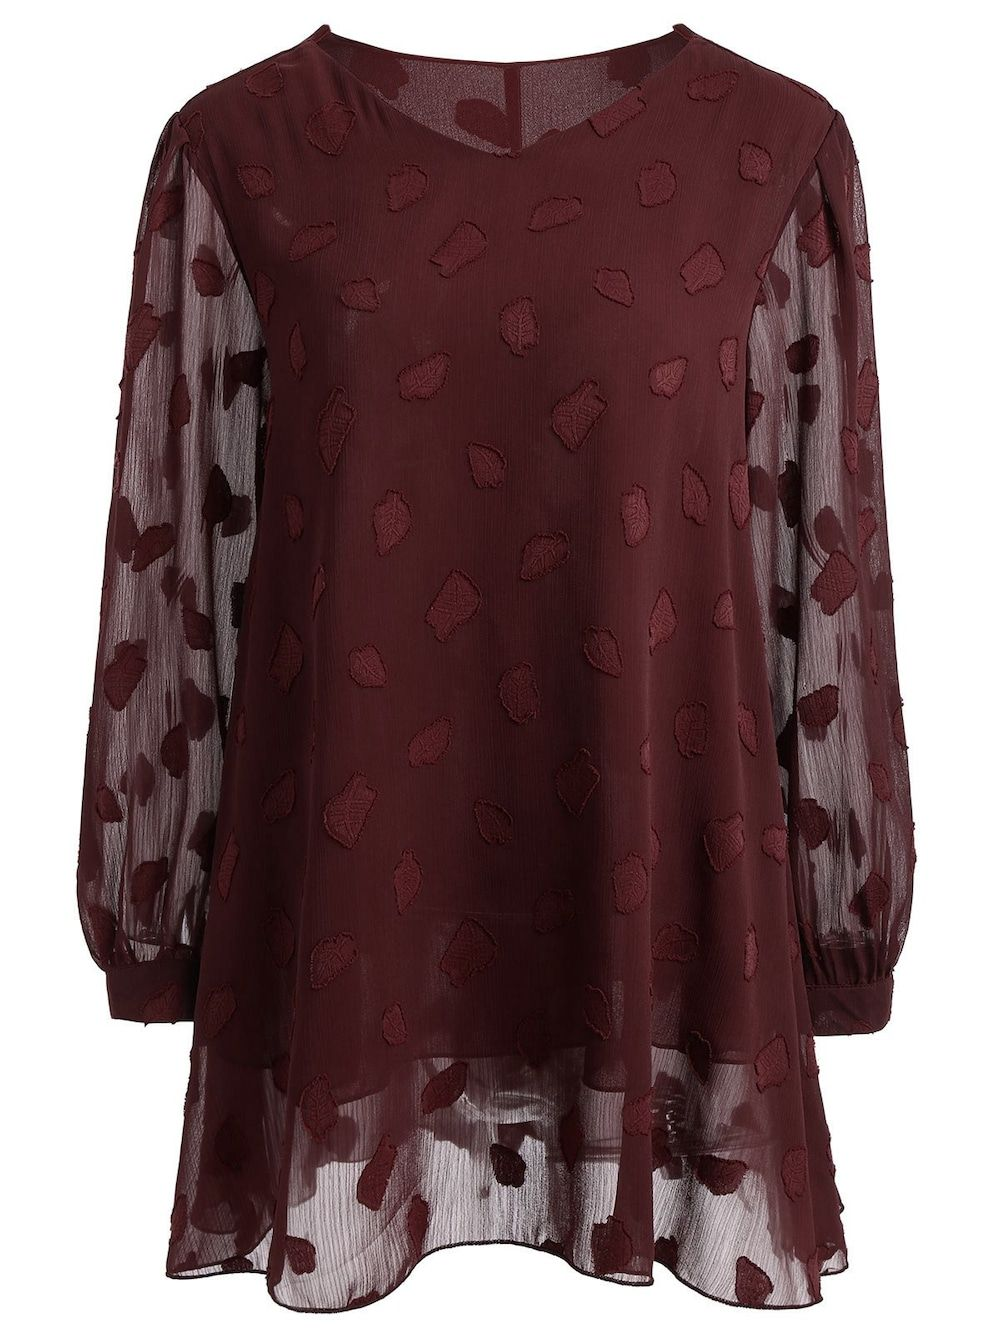 authentische Qualität fantastische Einsparungen Beste Plus Size Long Sleeve Semi Sheer Lace Blouse - CLARET 5XL ...